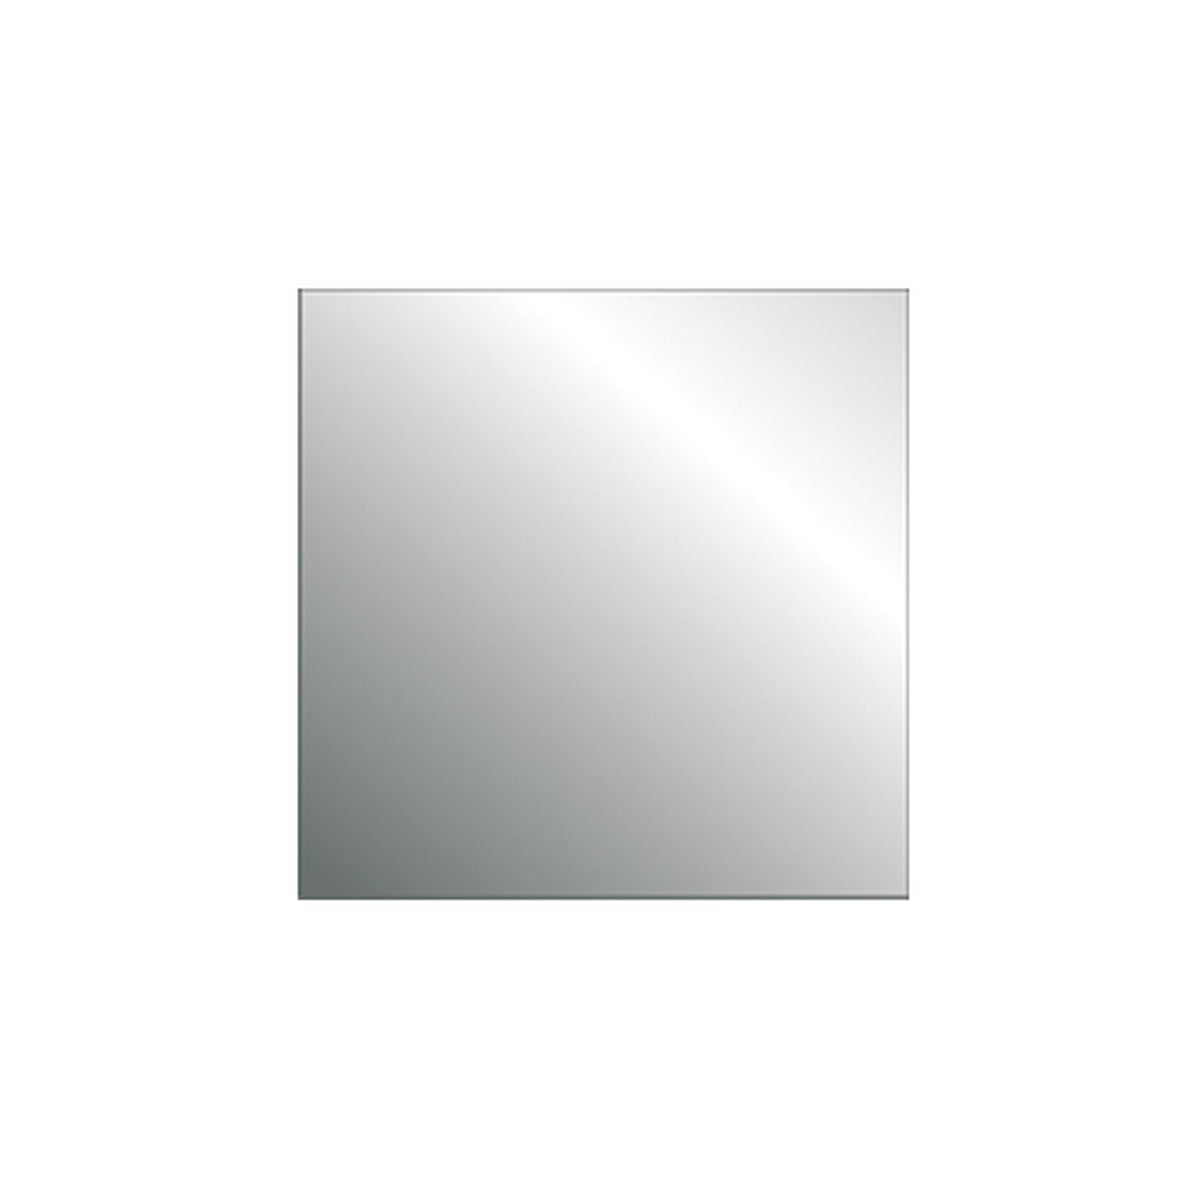 Widely Used Driade – No Frame I, Square Wall Mirror Pertaining To No Frame Wall Mirrors (View 2 of 20)